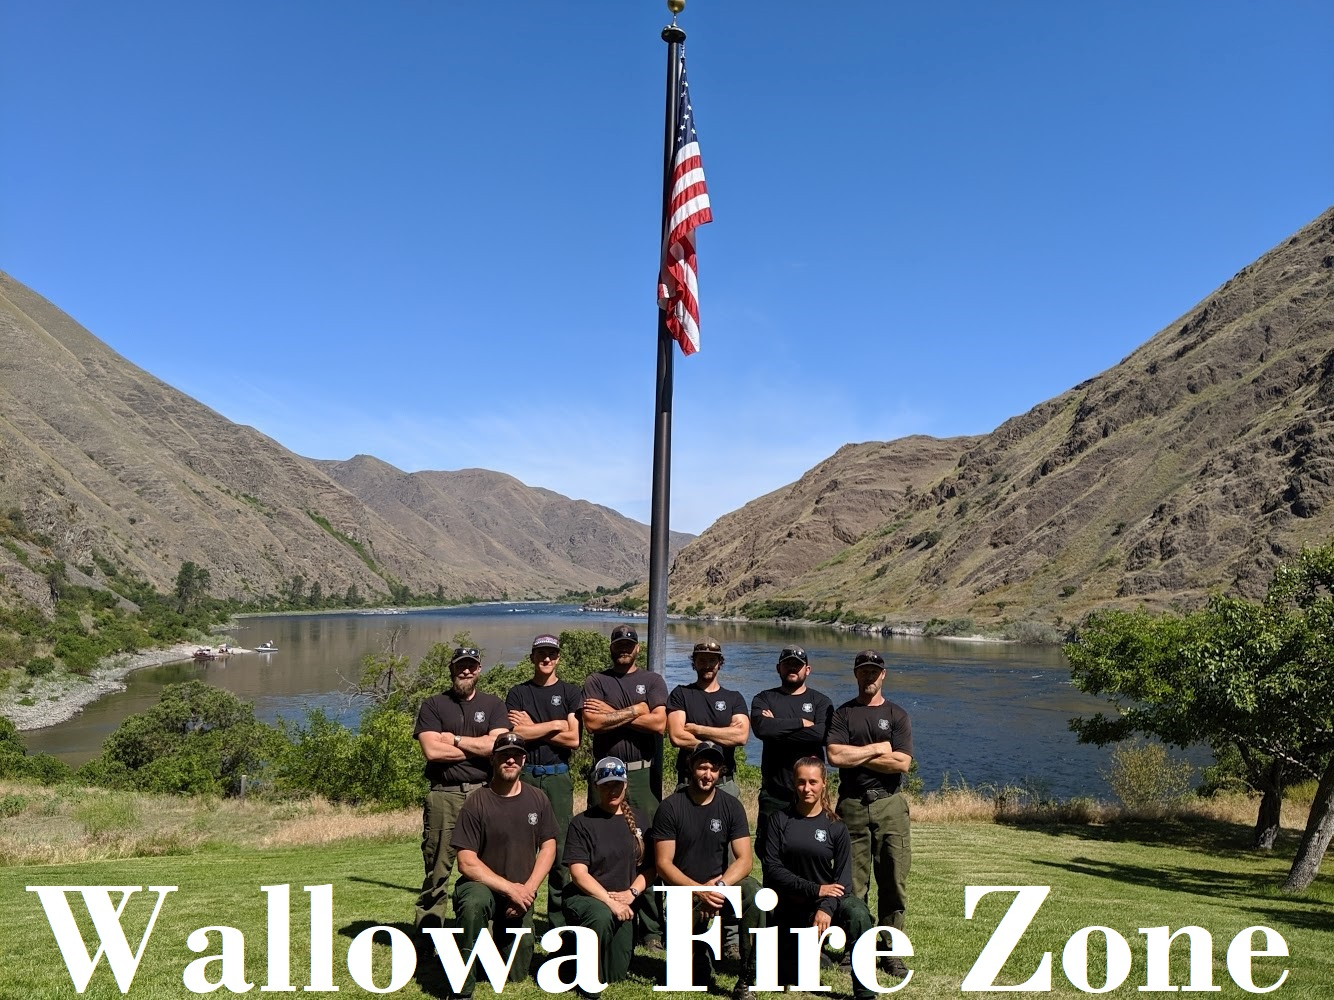 Wallowa Fire Zone Crew 51 at Cache Creek Admin site in the Hells Canyon NRA